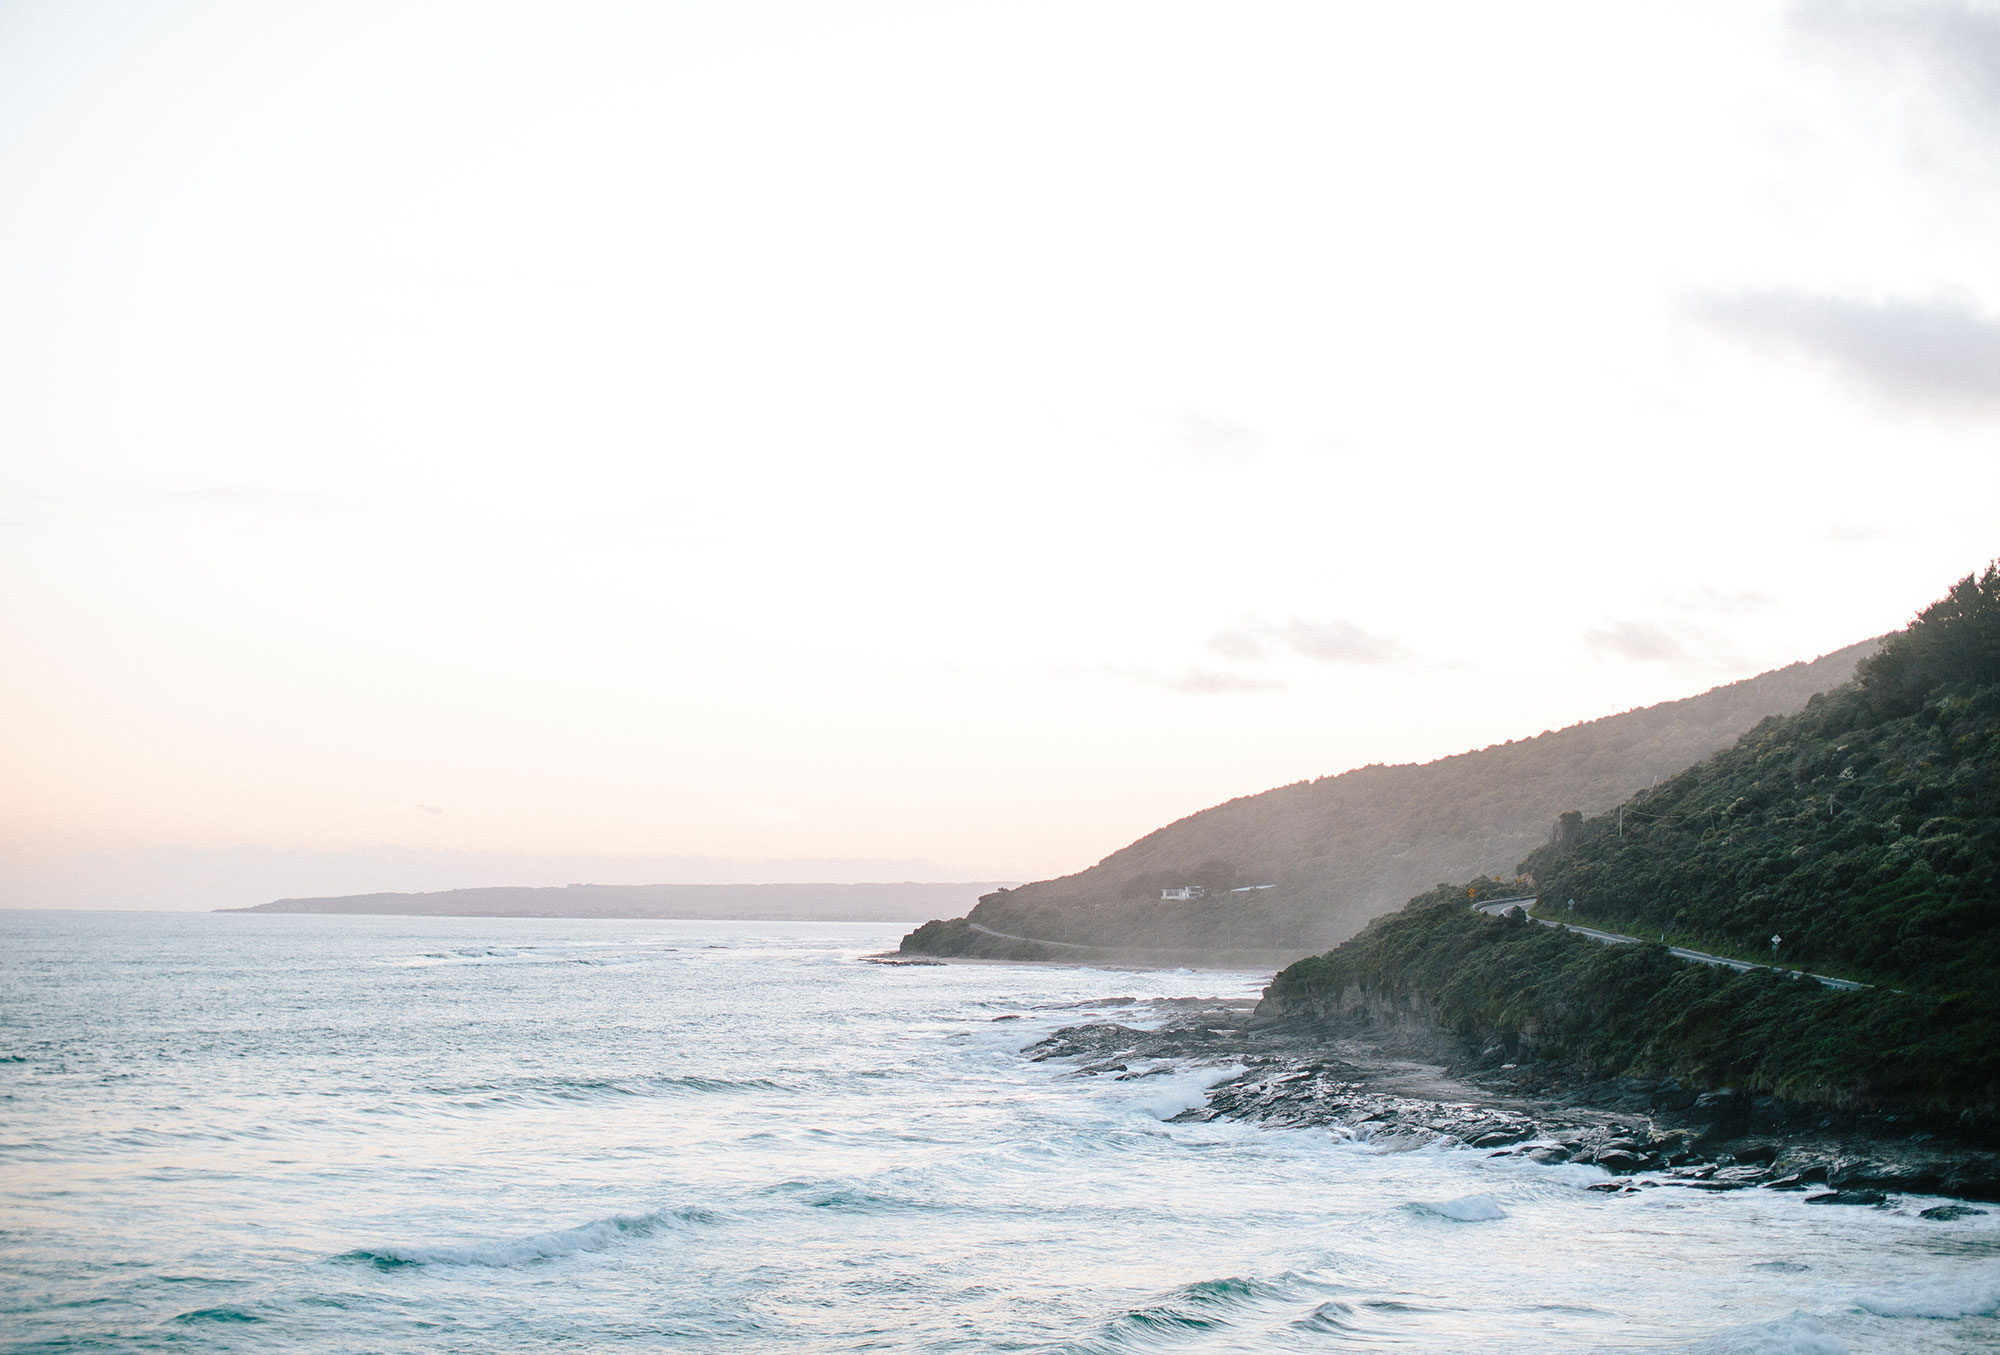 (Wellbeing management - hiking along the Melbourne Coastline, Rich Stapleton)